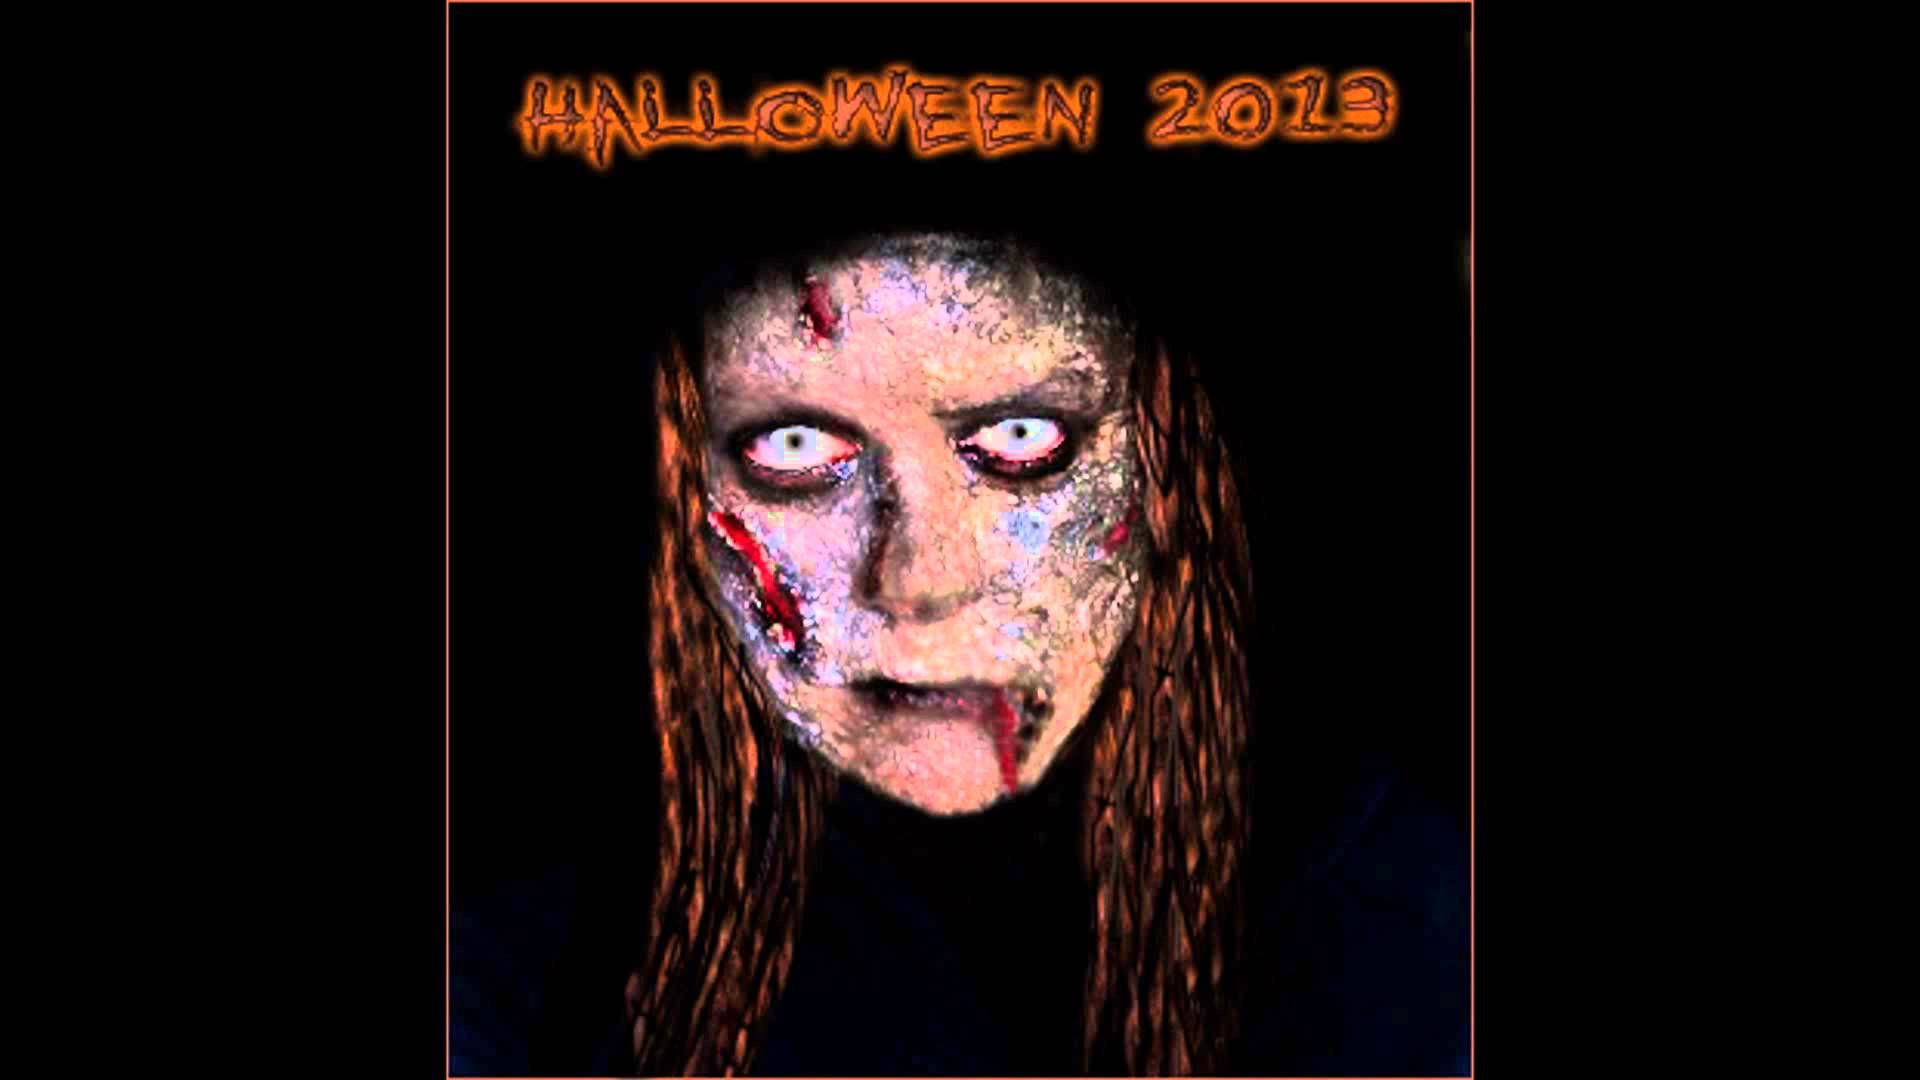 Halloween Geluiden Downloaden.Scary Halloween Sounds Download Mp3 Wolves Witch Crows